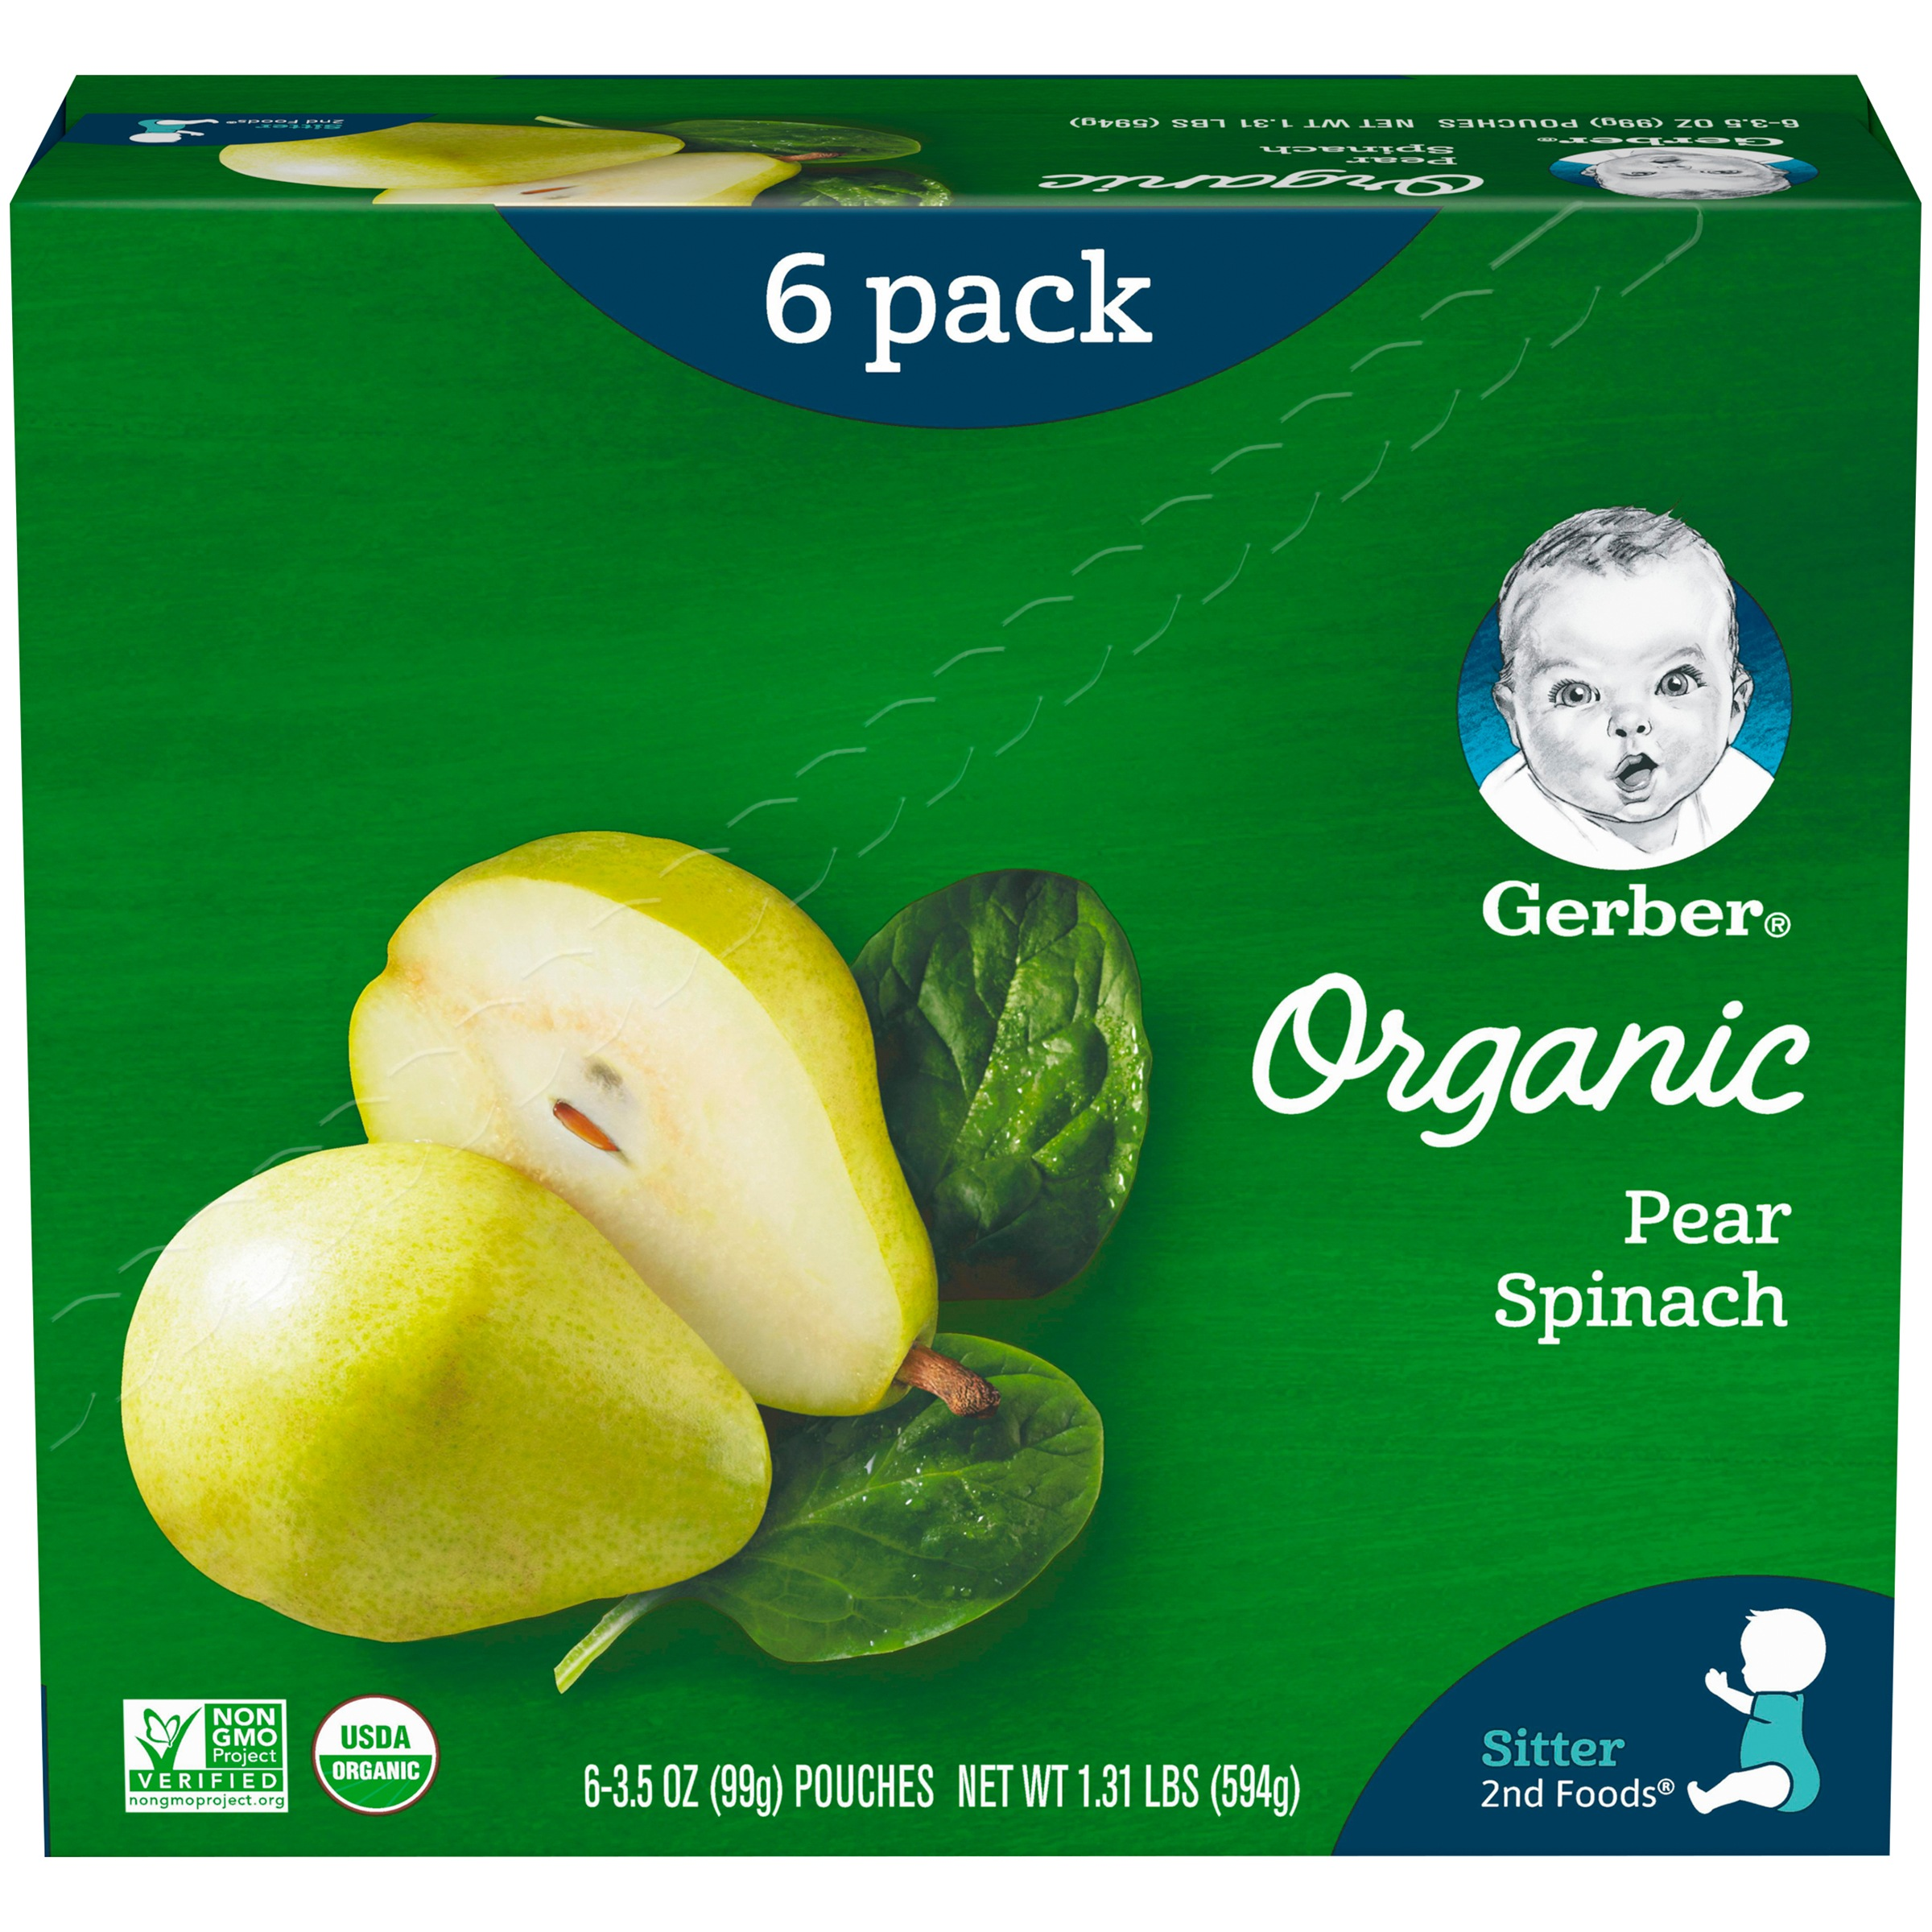 Gerber 2nd Foods Organic Baby Food, Pears & Spinach, 3.5 oz. Pouch (Pack of 6)